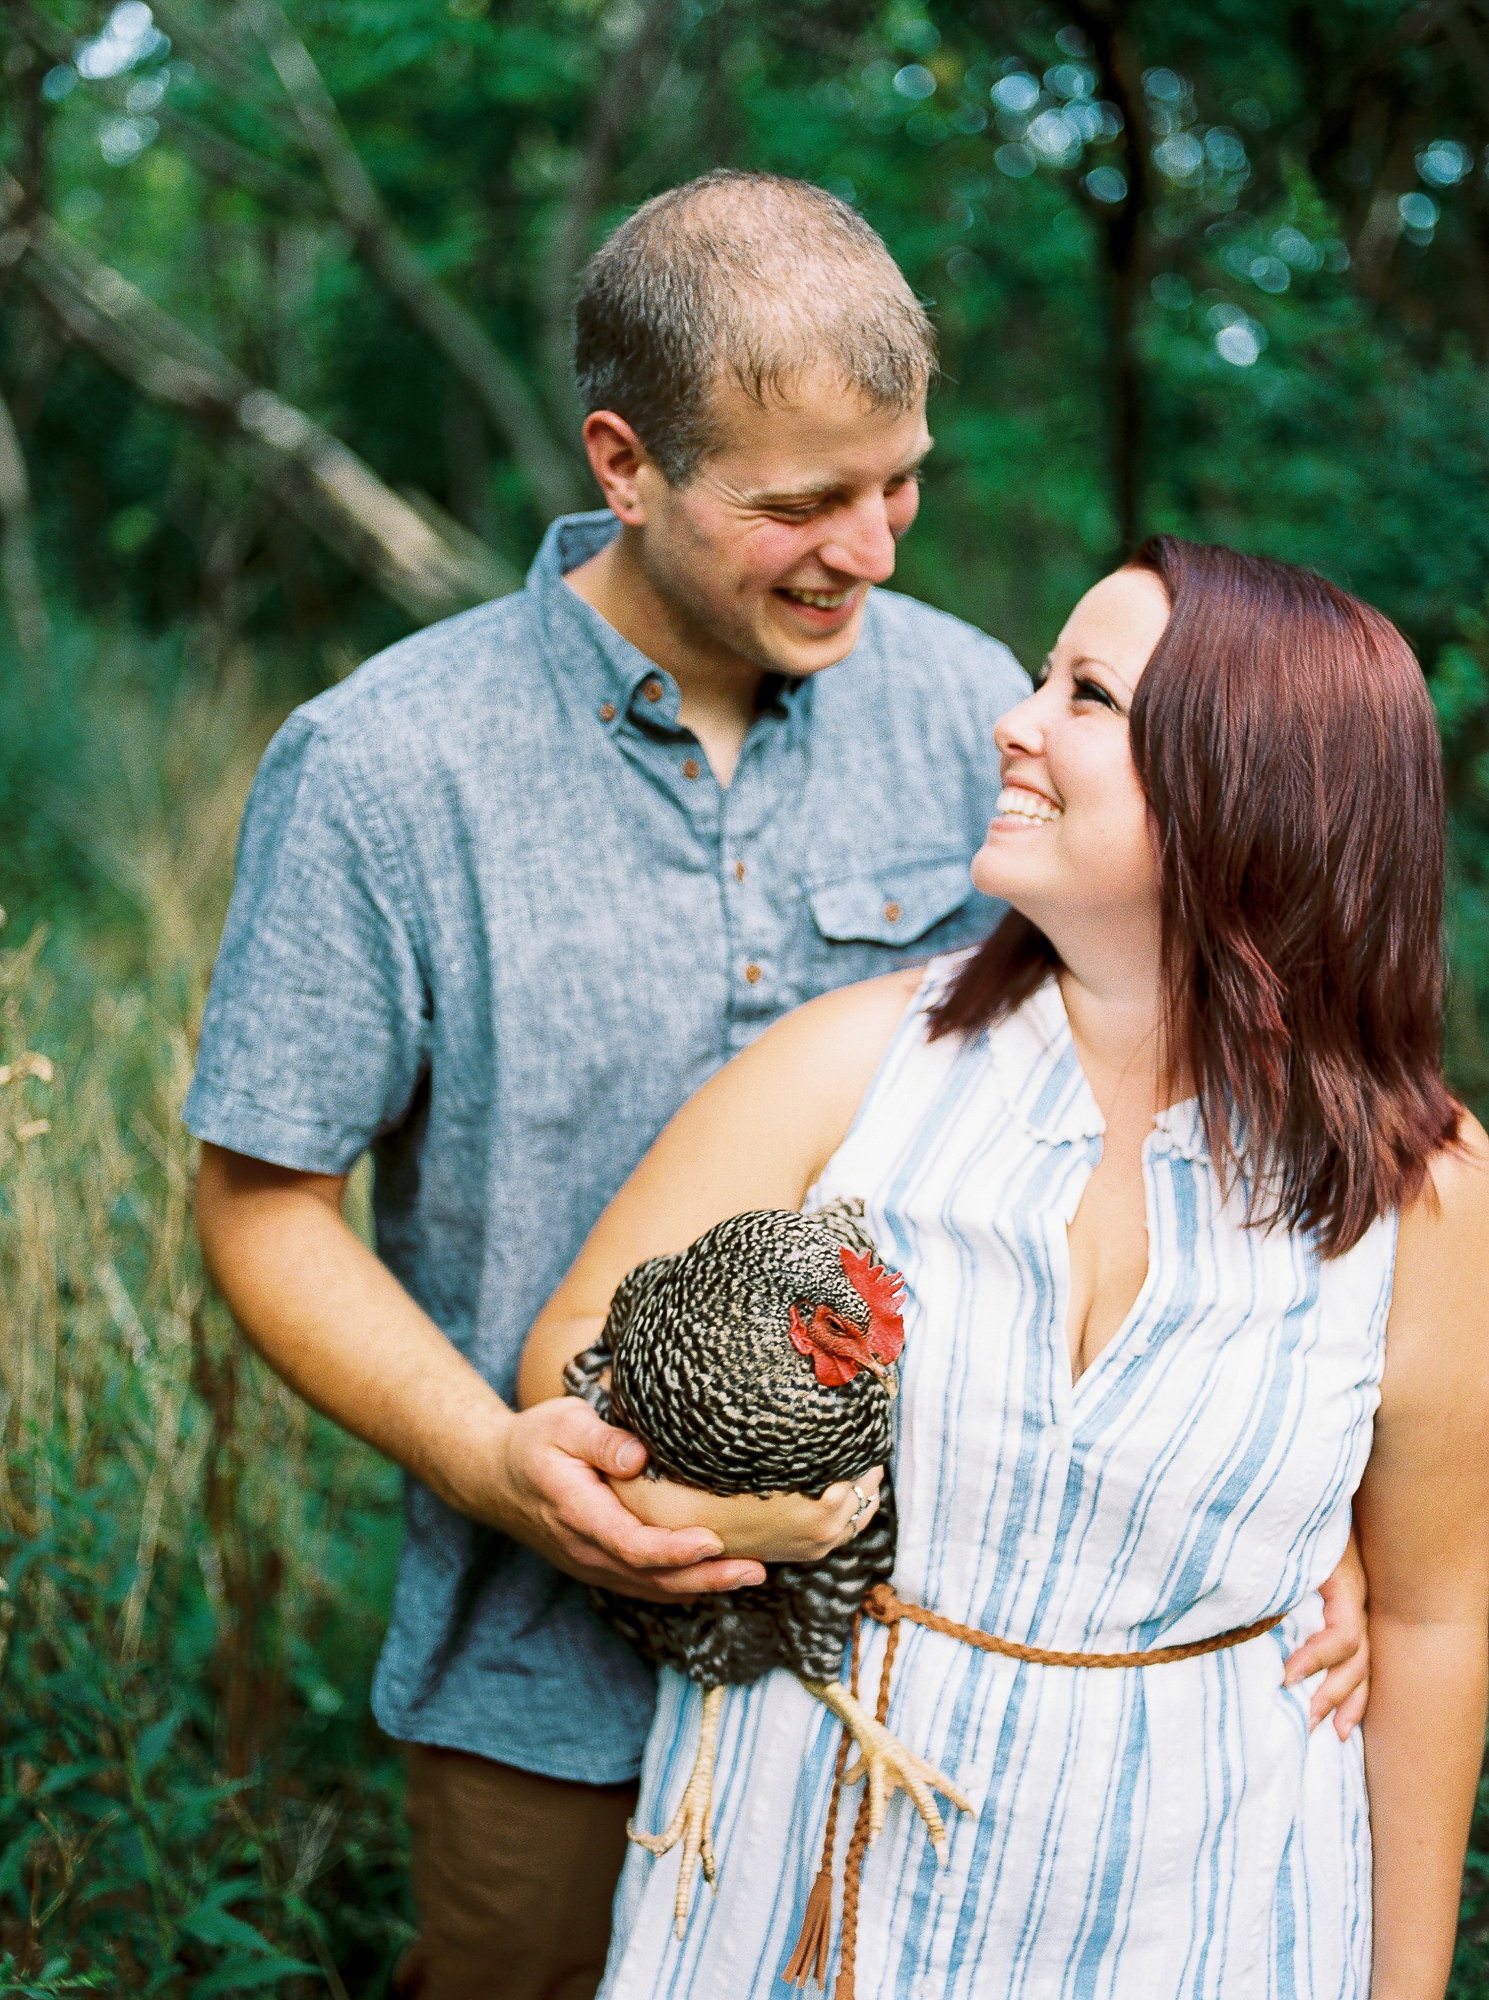 Alexandra-Elise-Photography-Ali-Reed-Film-Farm-Engagement-Session-009